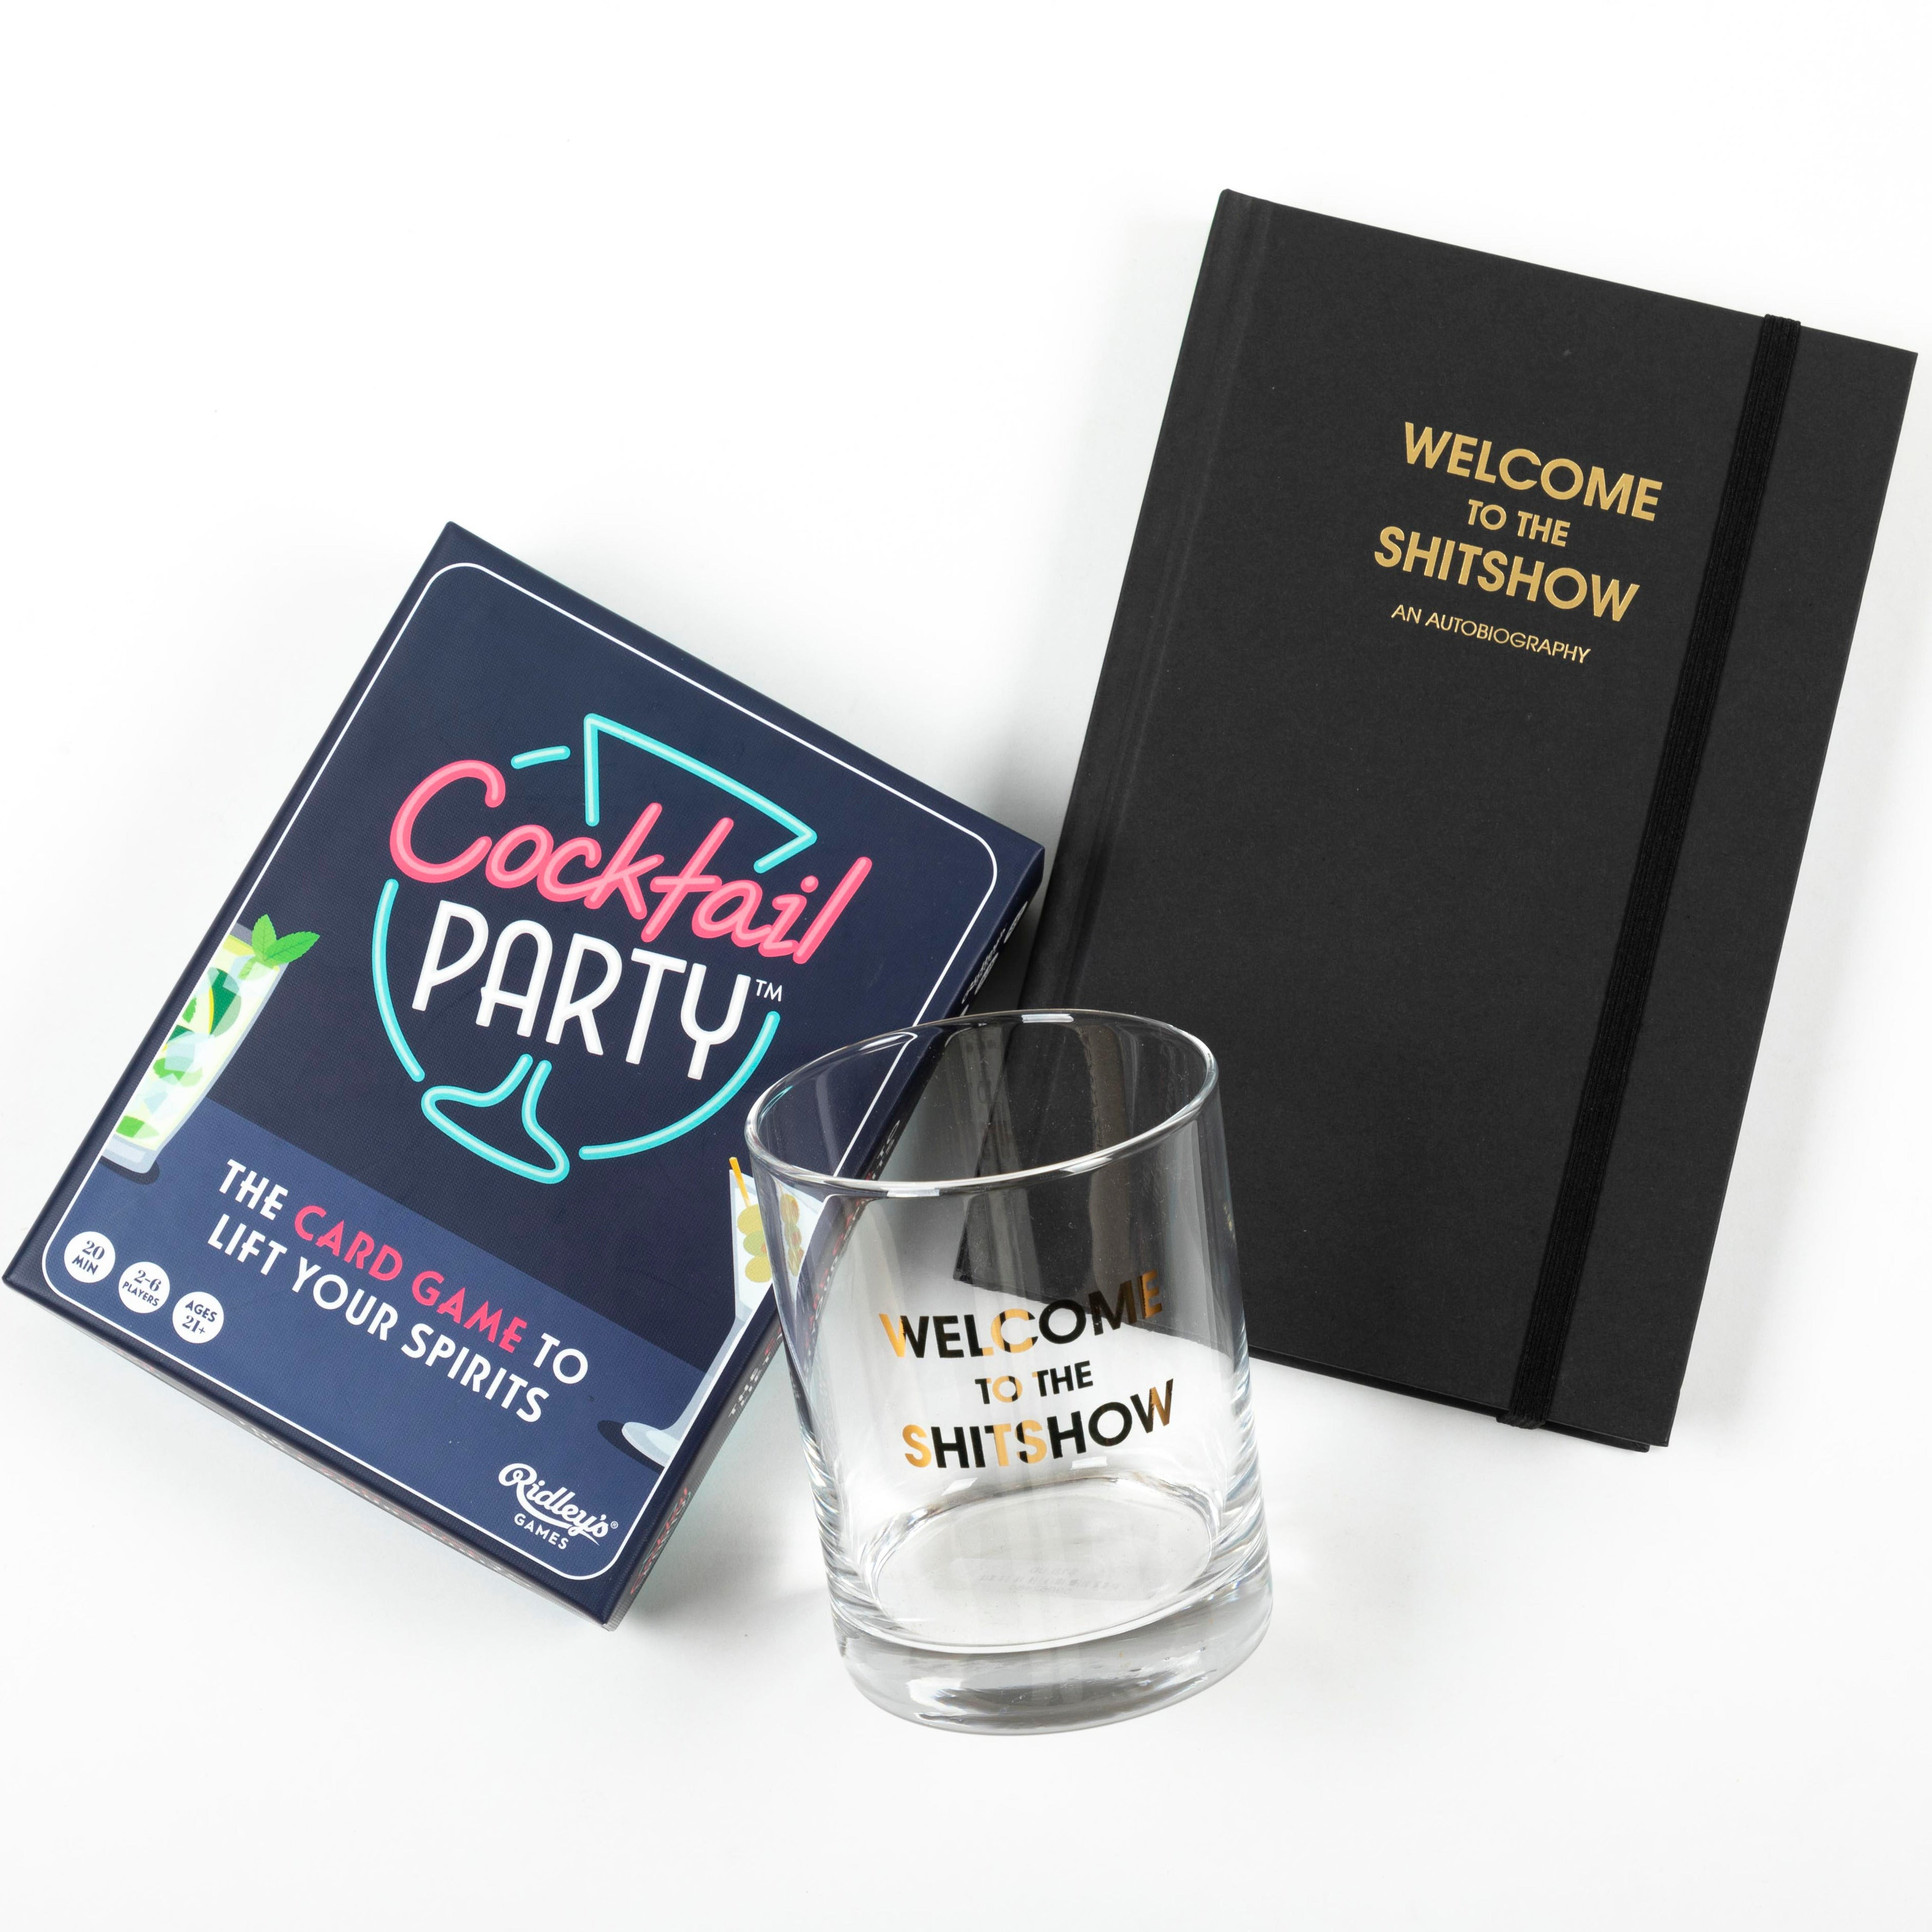 Welcome To The Shitshow gift set includes welcome to the shitshow gilt lettering rocks glass, journal and cocktail party card game.